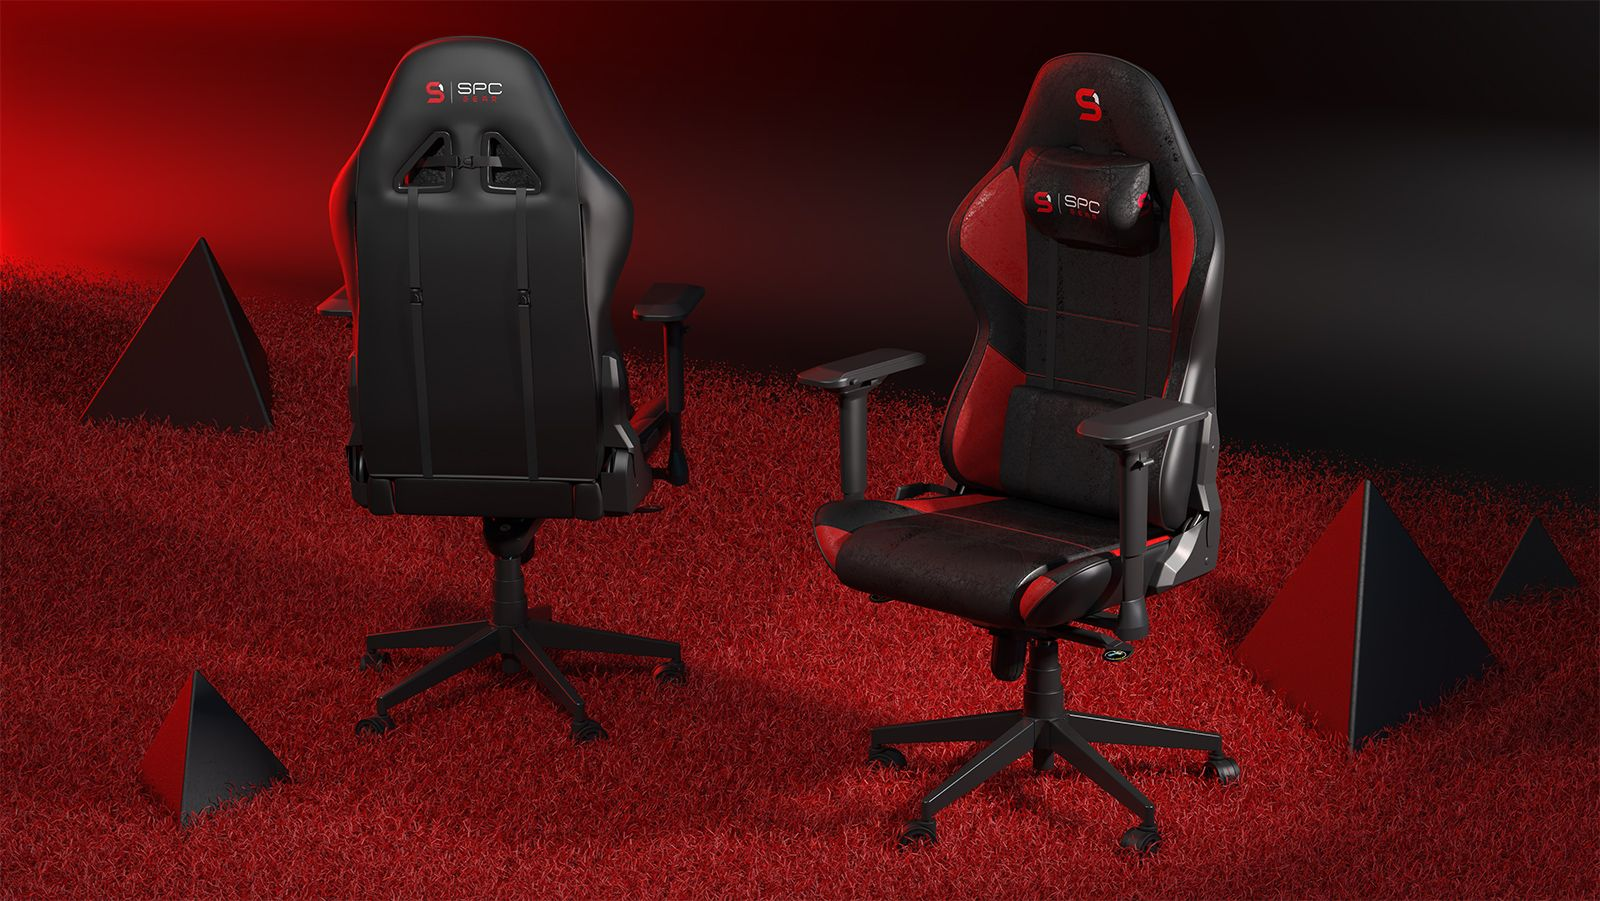 Spc Gear Introduces Sr600 Premium Gaming Chairs With Excellent Comfort And Bold Design Gaming Chair Design Games